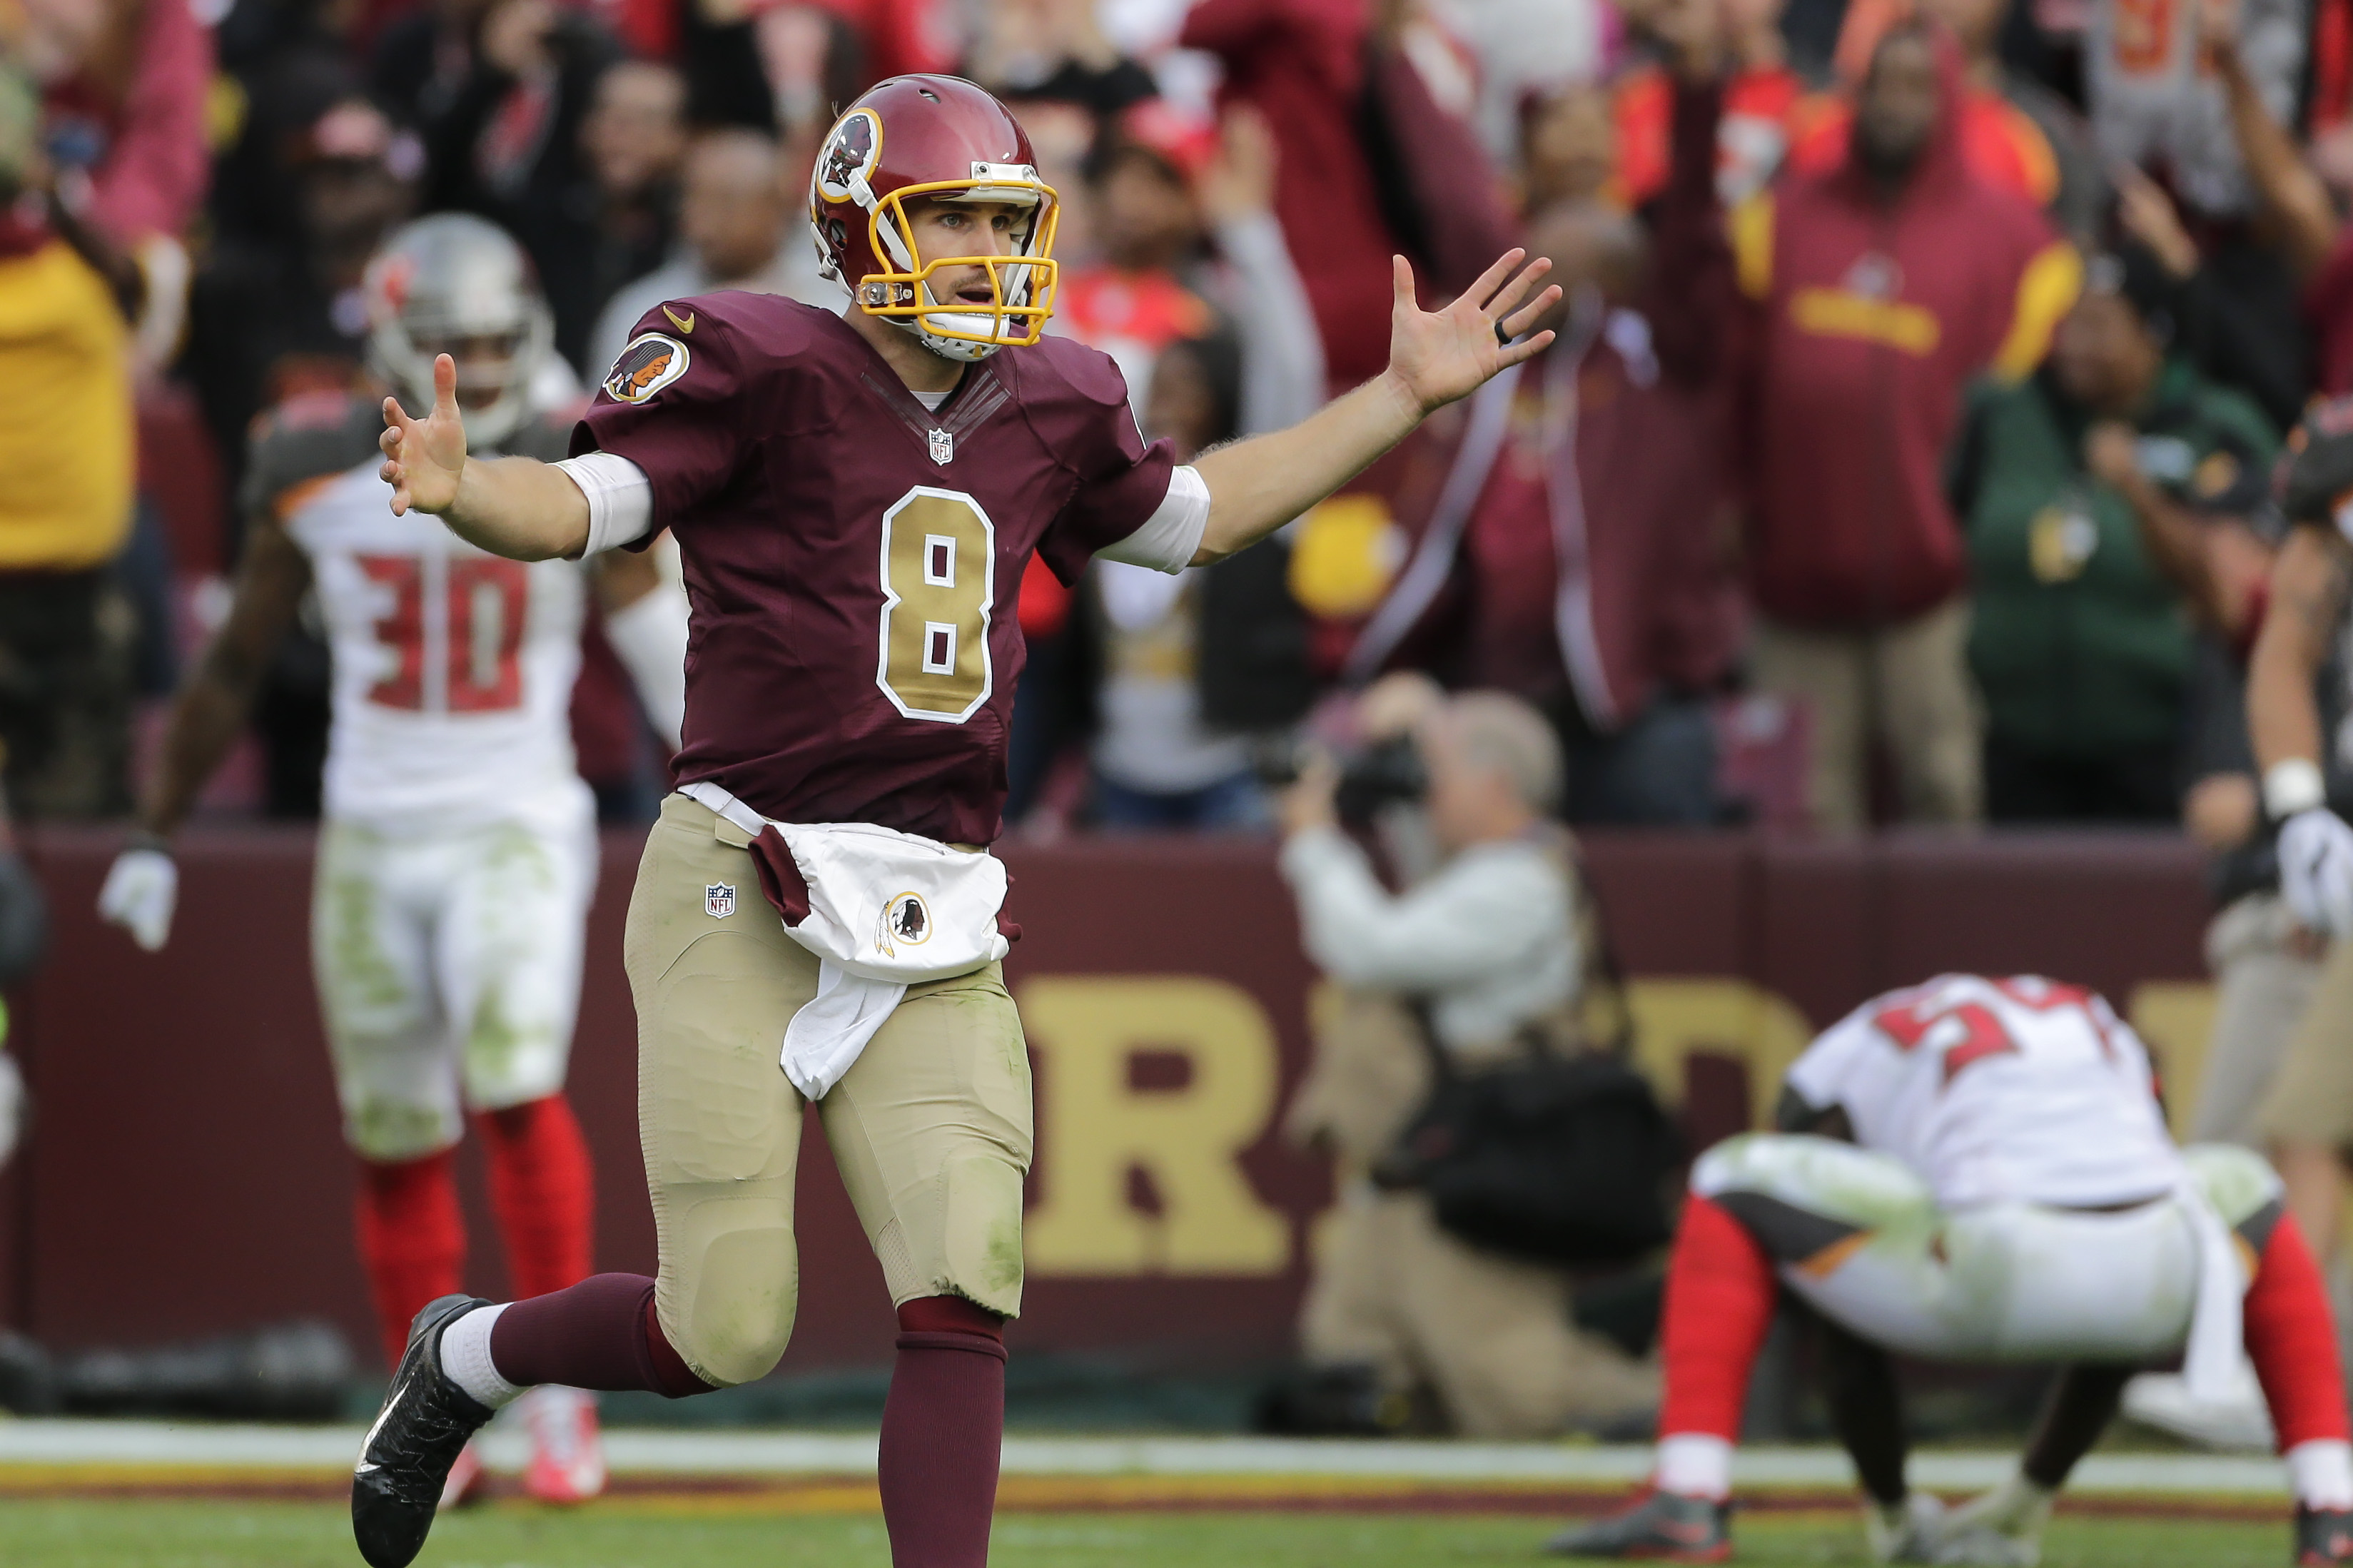 After a stirring win, there's reason for the Redskins — and fans — to hope